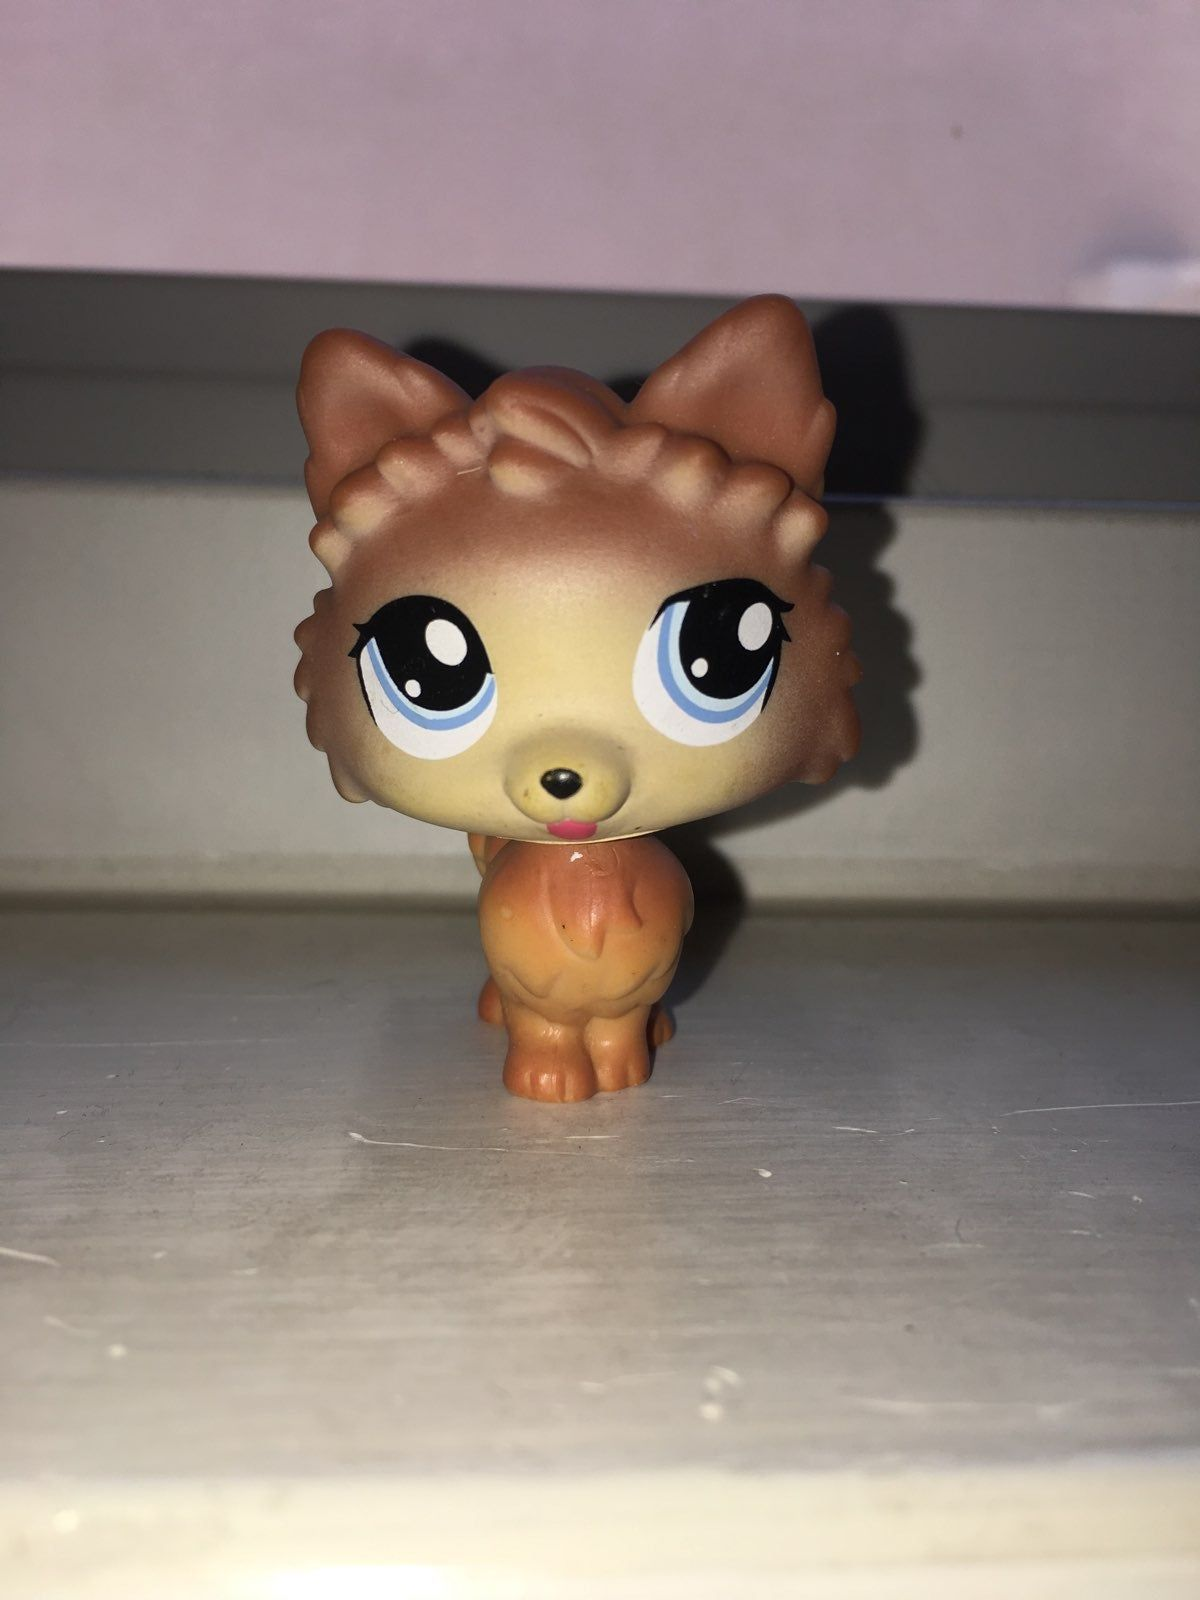 Lps Like New Condition Smoke Free Home Pet Home Message Me If You Want To Separate Or Add A Lot Allowing Holds Lps Dog Pets Pet Shop